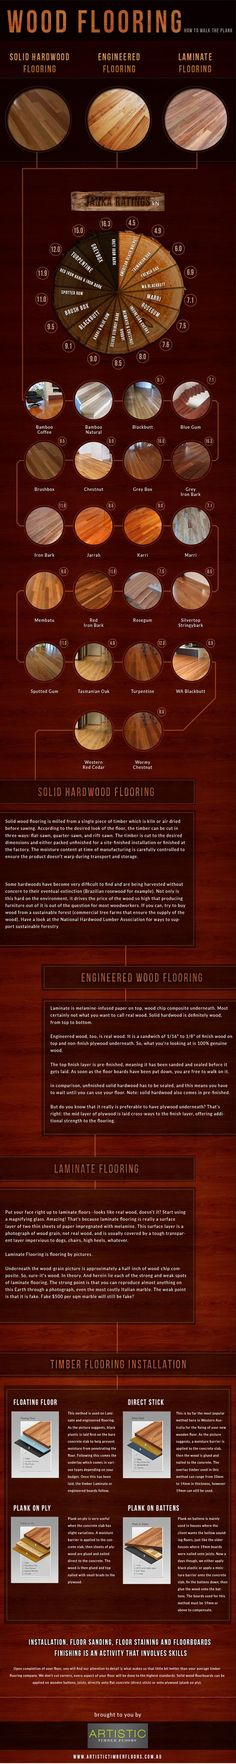 Wood Flooring - How to walk the plank. This Info-graphic introduces the 3 main types of wood flooring which are: Solid hardwood flooring, Engineered flooring and Laminate flooring. Types Of Wood Flooring, Timber Flooring, Laminate Flooring, Flooring Ideas, Types Of Hardwood Floors, Grey Laminate, Modern Flooring, Farmhouse Flooring, Solid Wood Flooring